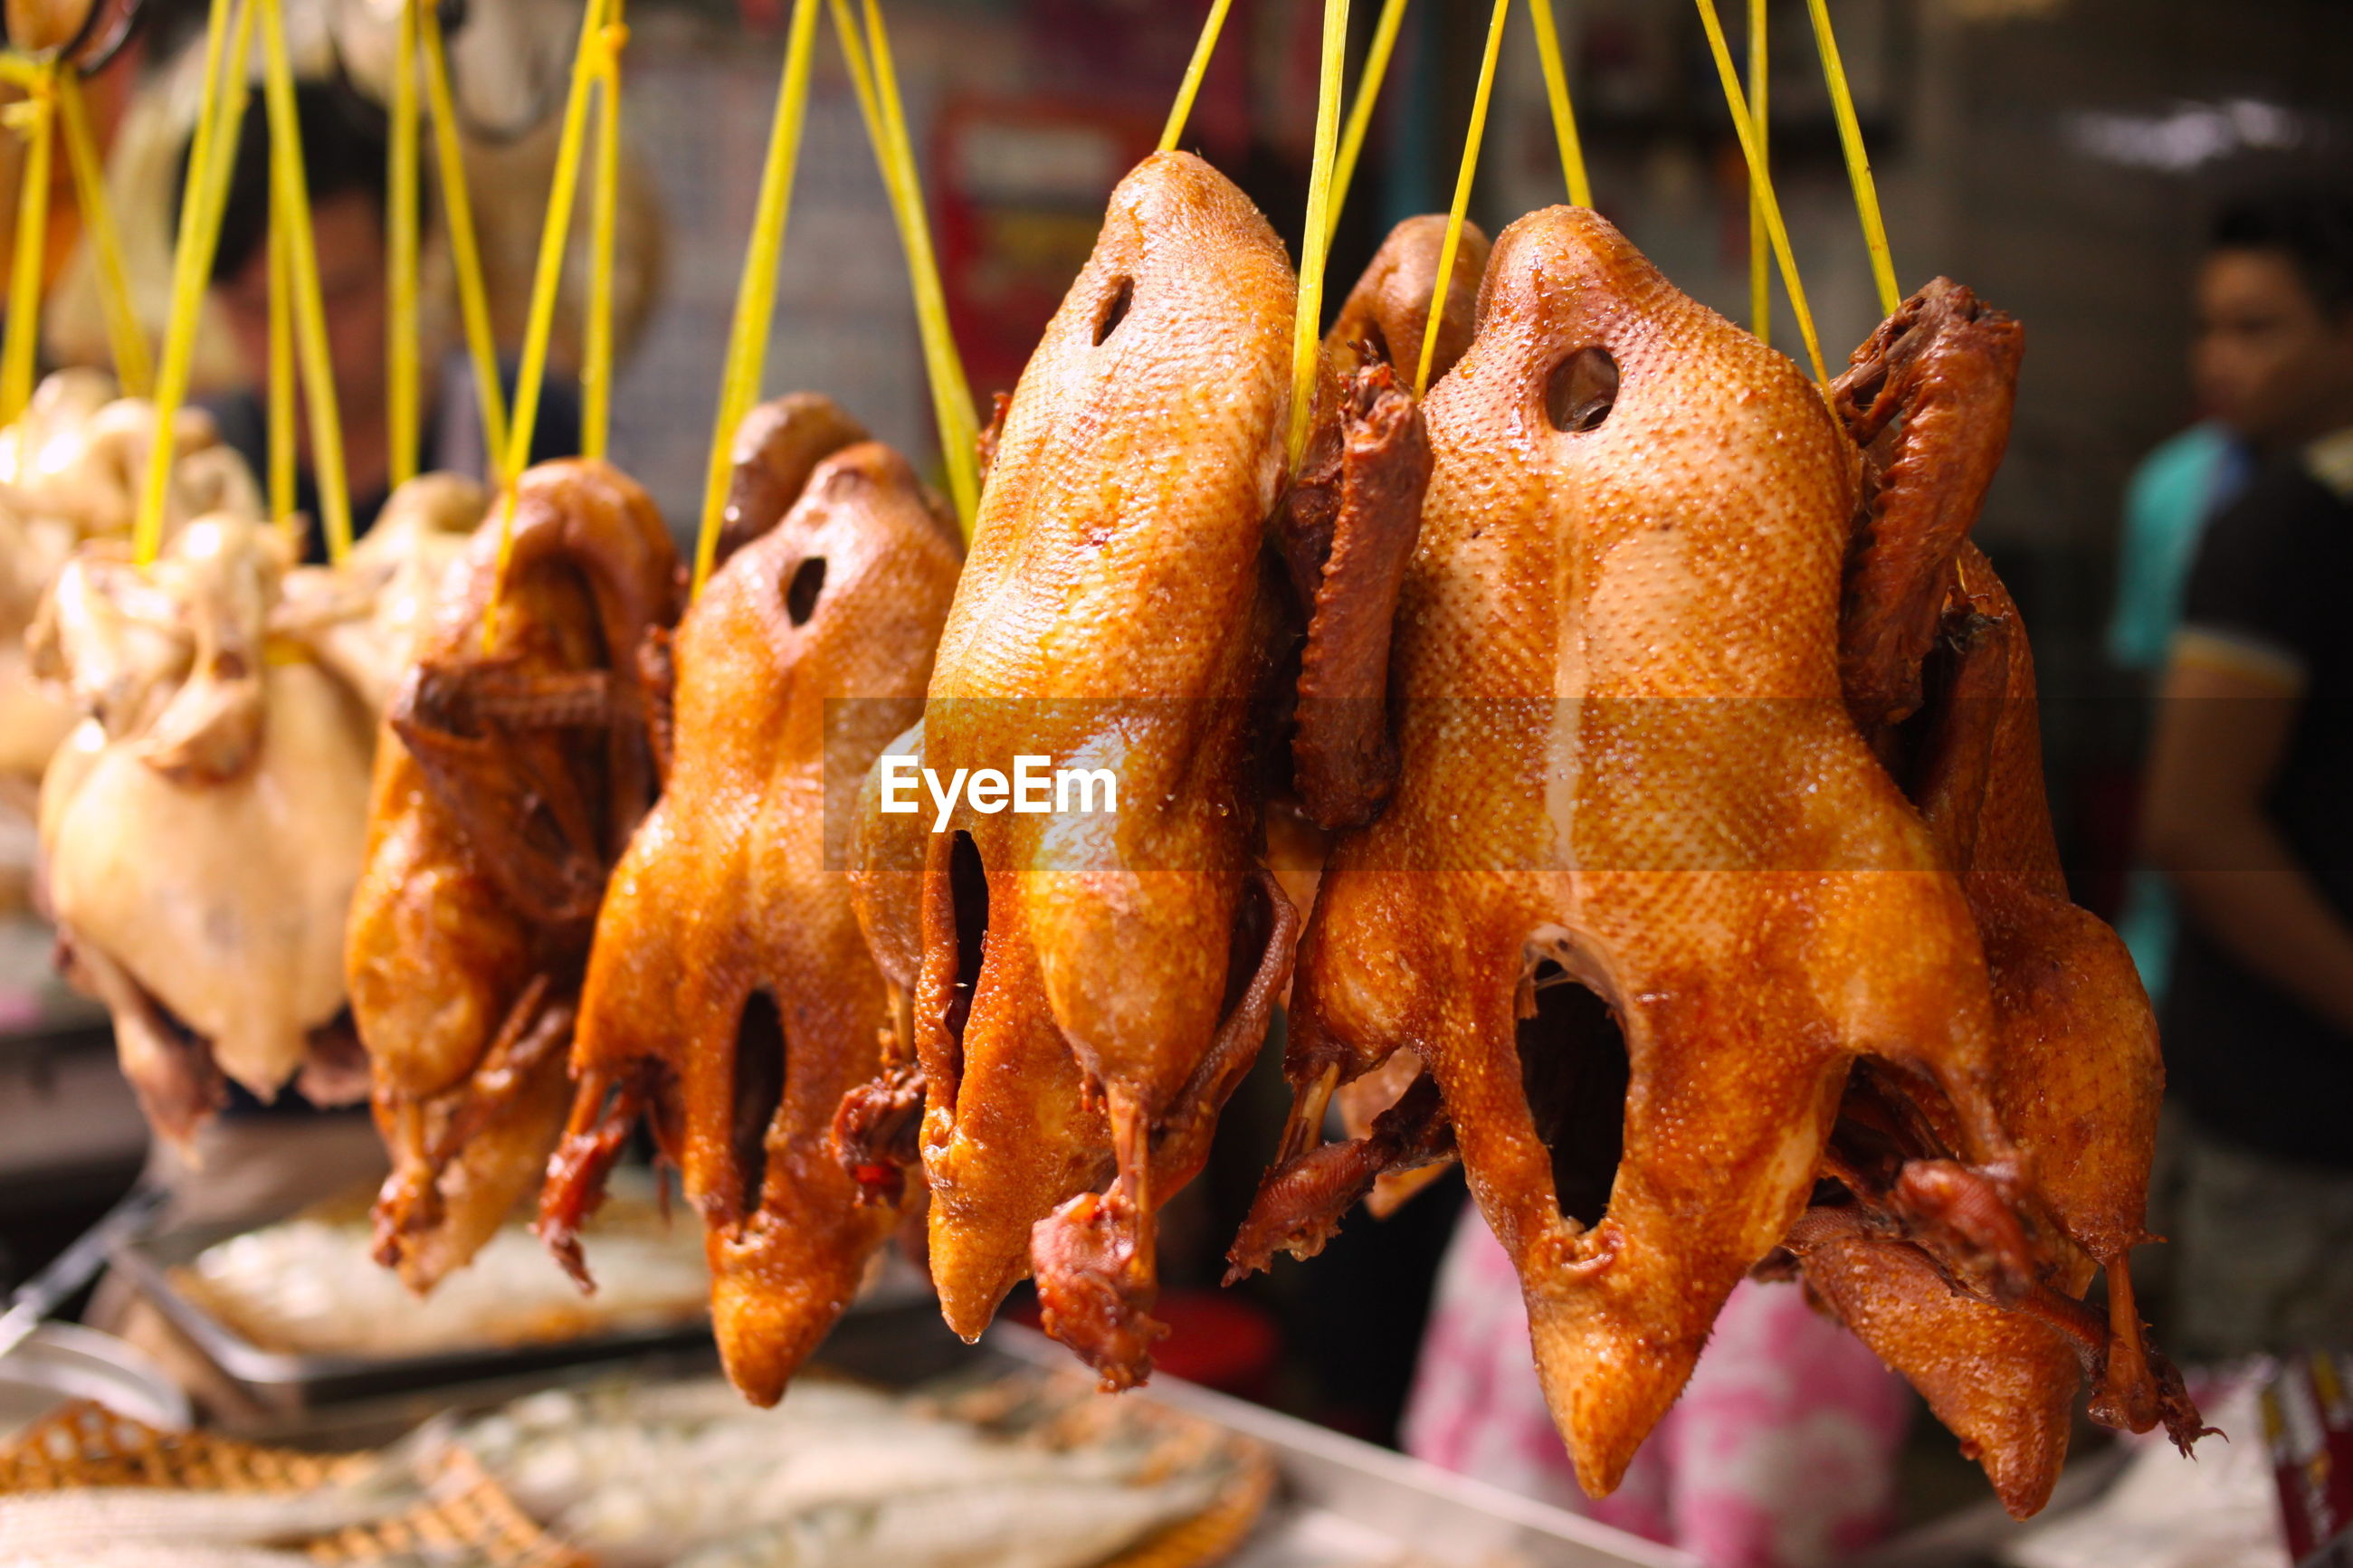 Close-up of roasted chicken for sale at market